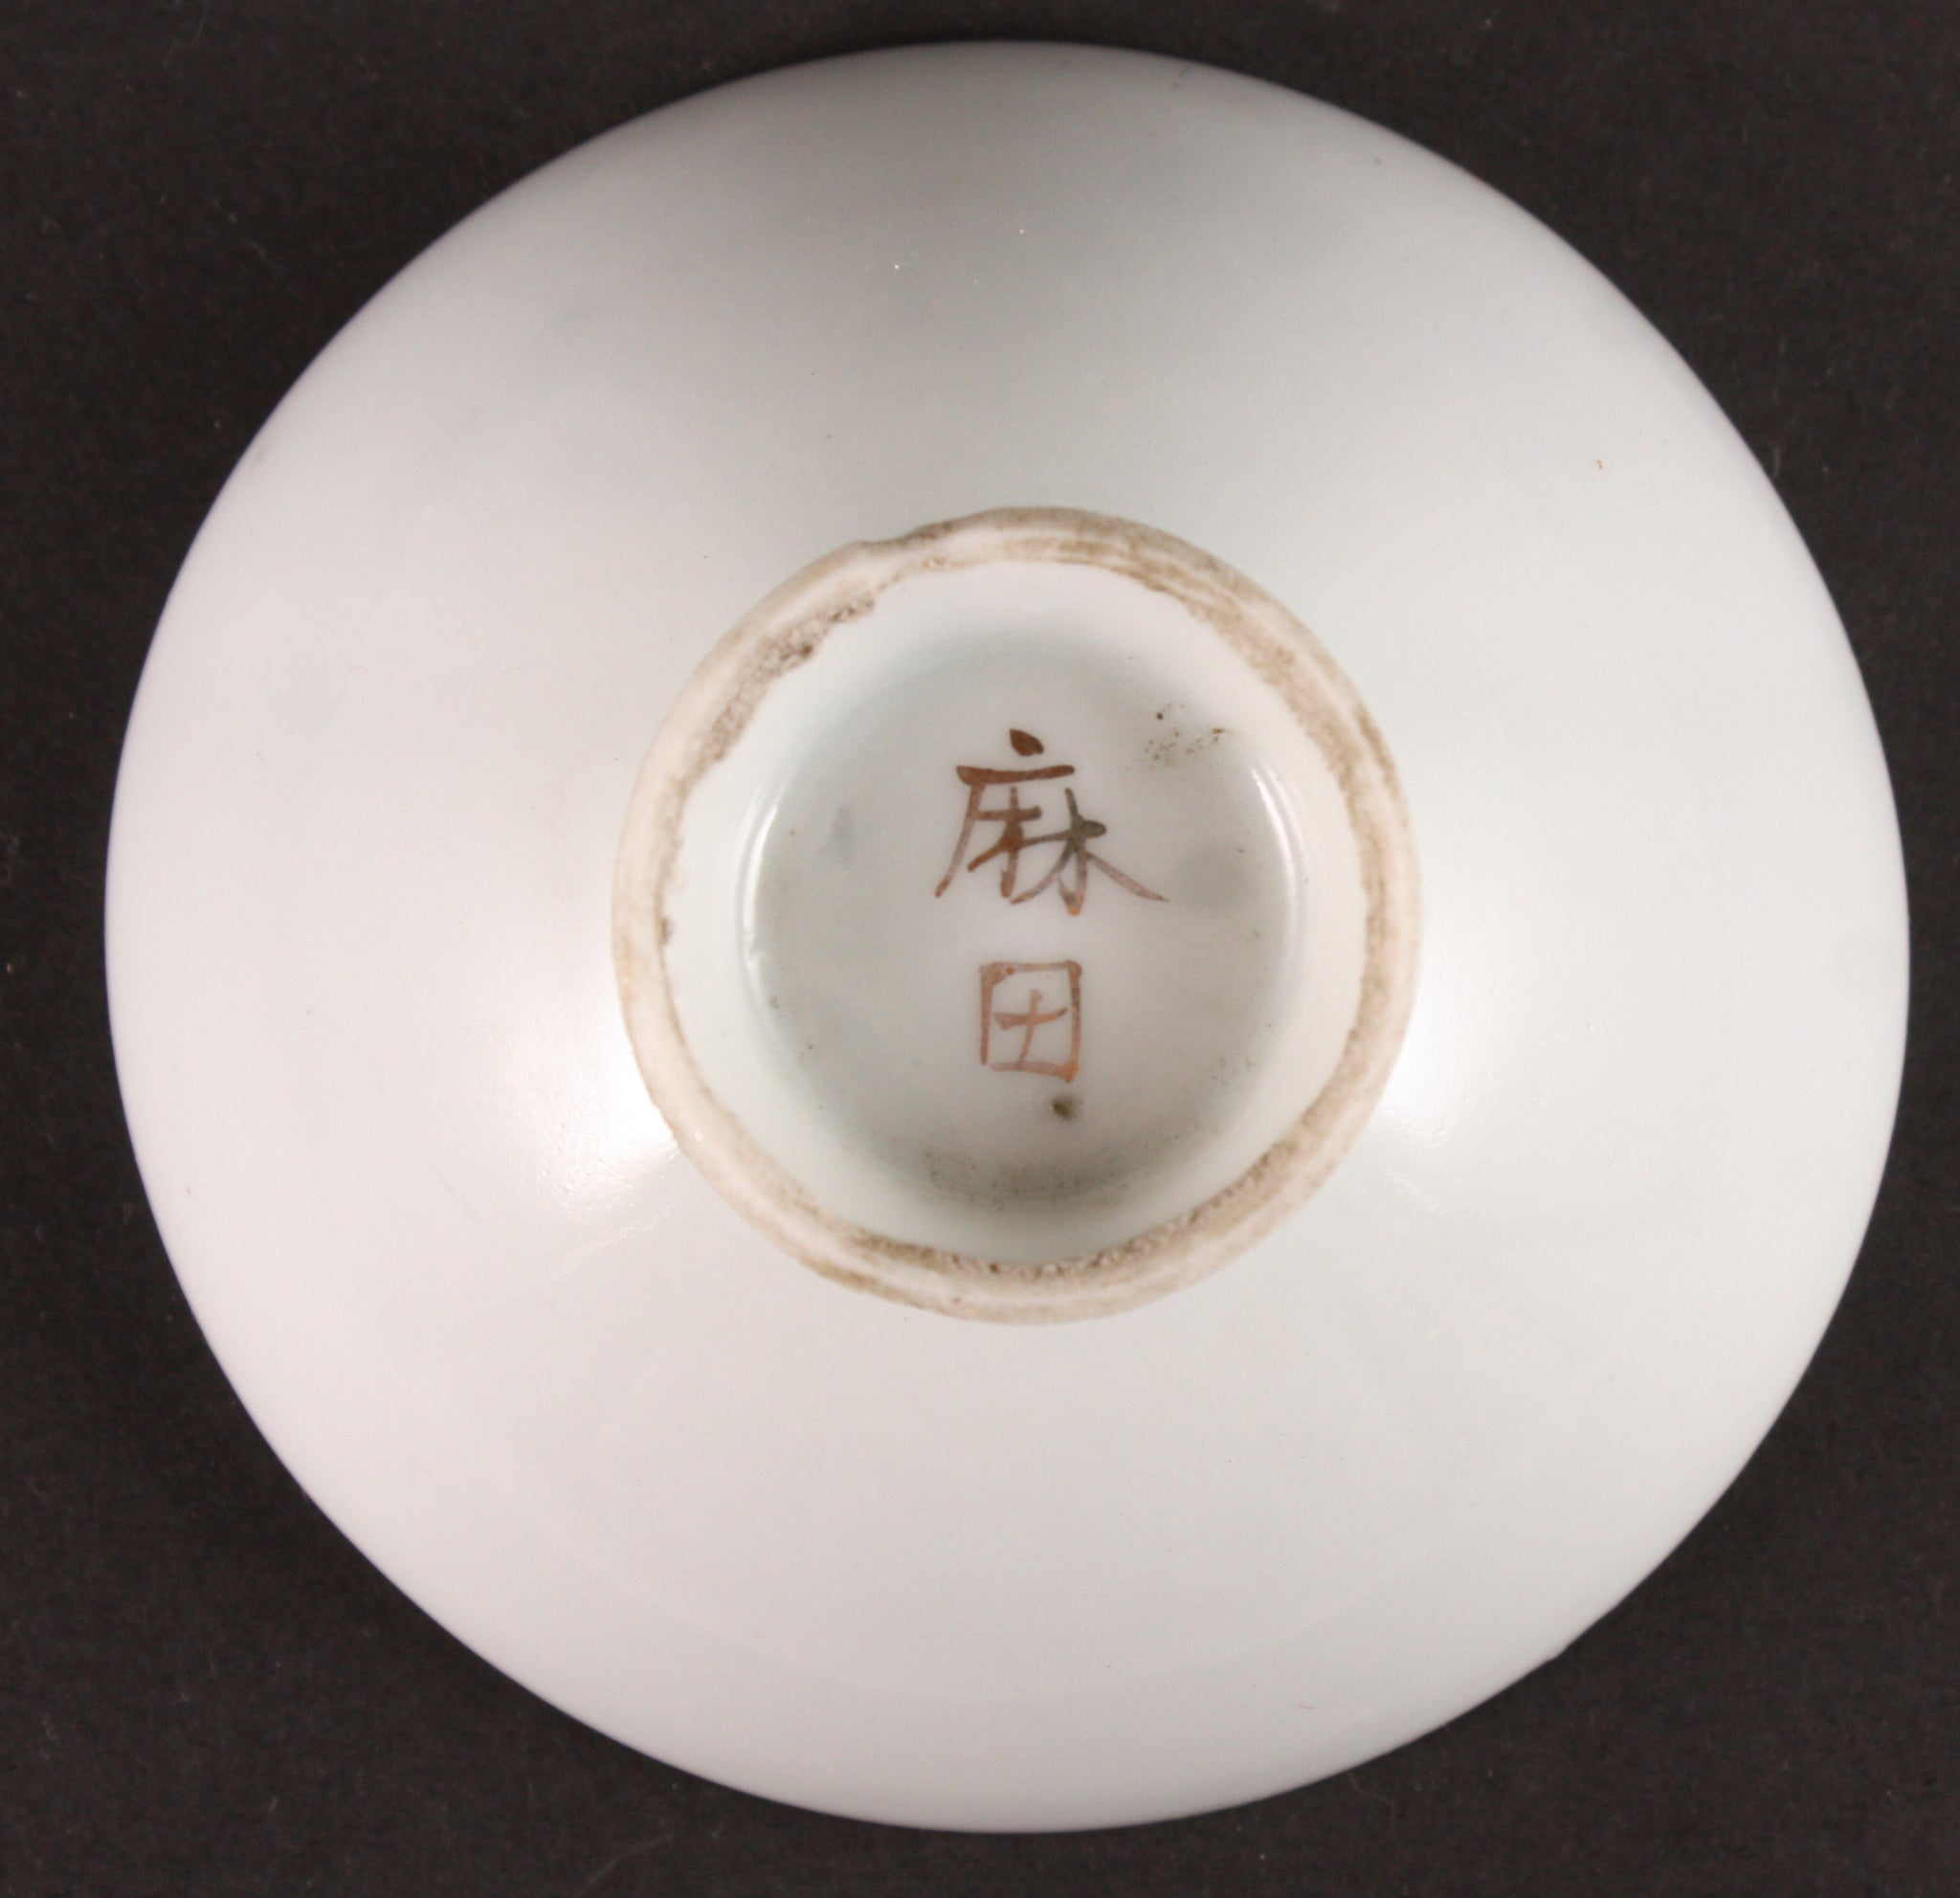 Very Rare Antique Japanese Military Hand Drawn Soldier Explosion Army Sake Cup